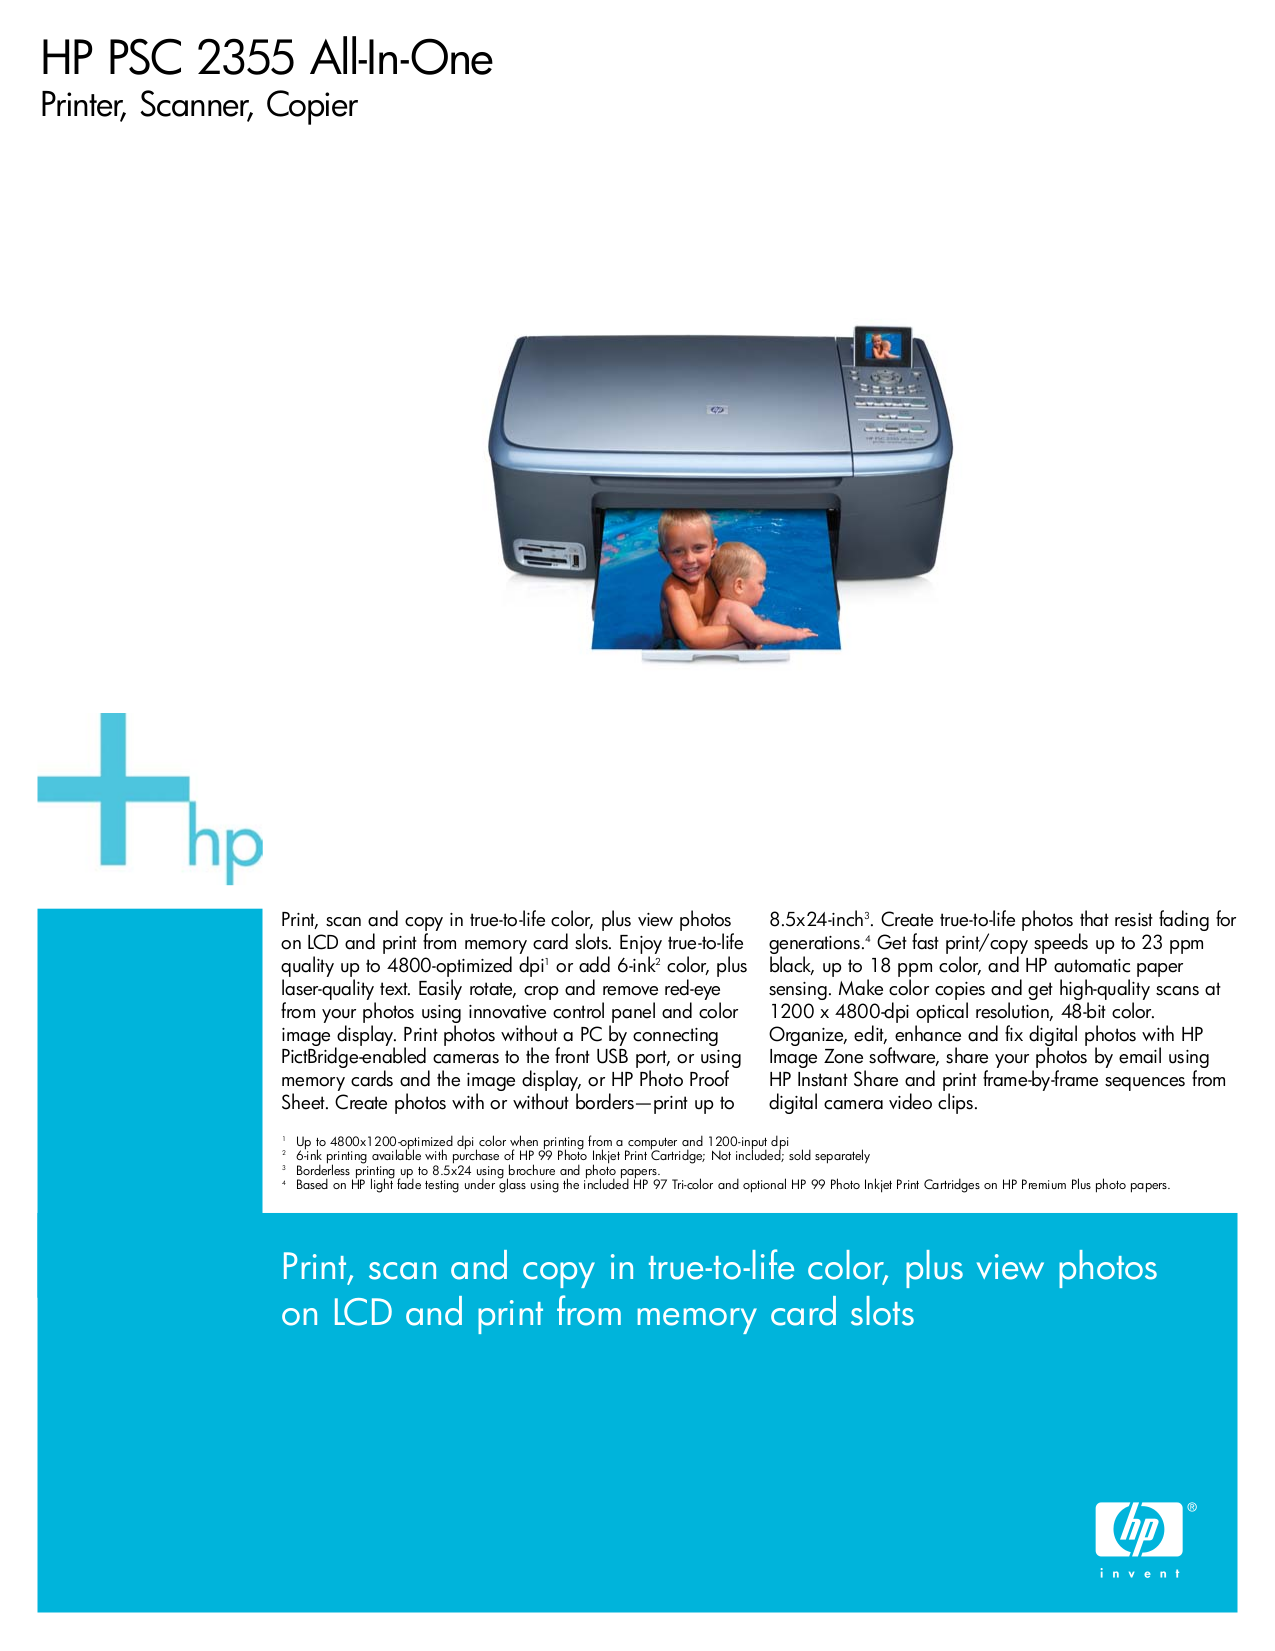 pdf for HP Multifunction Printer PSC 700 manual